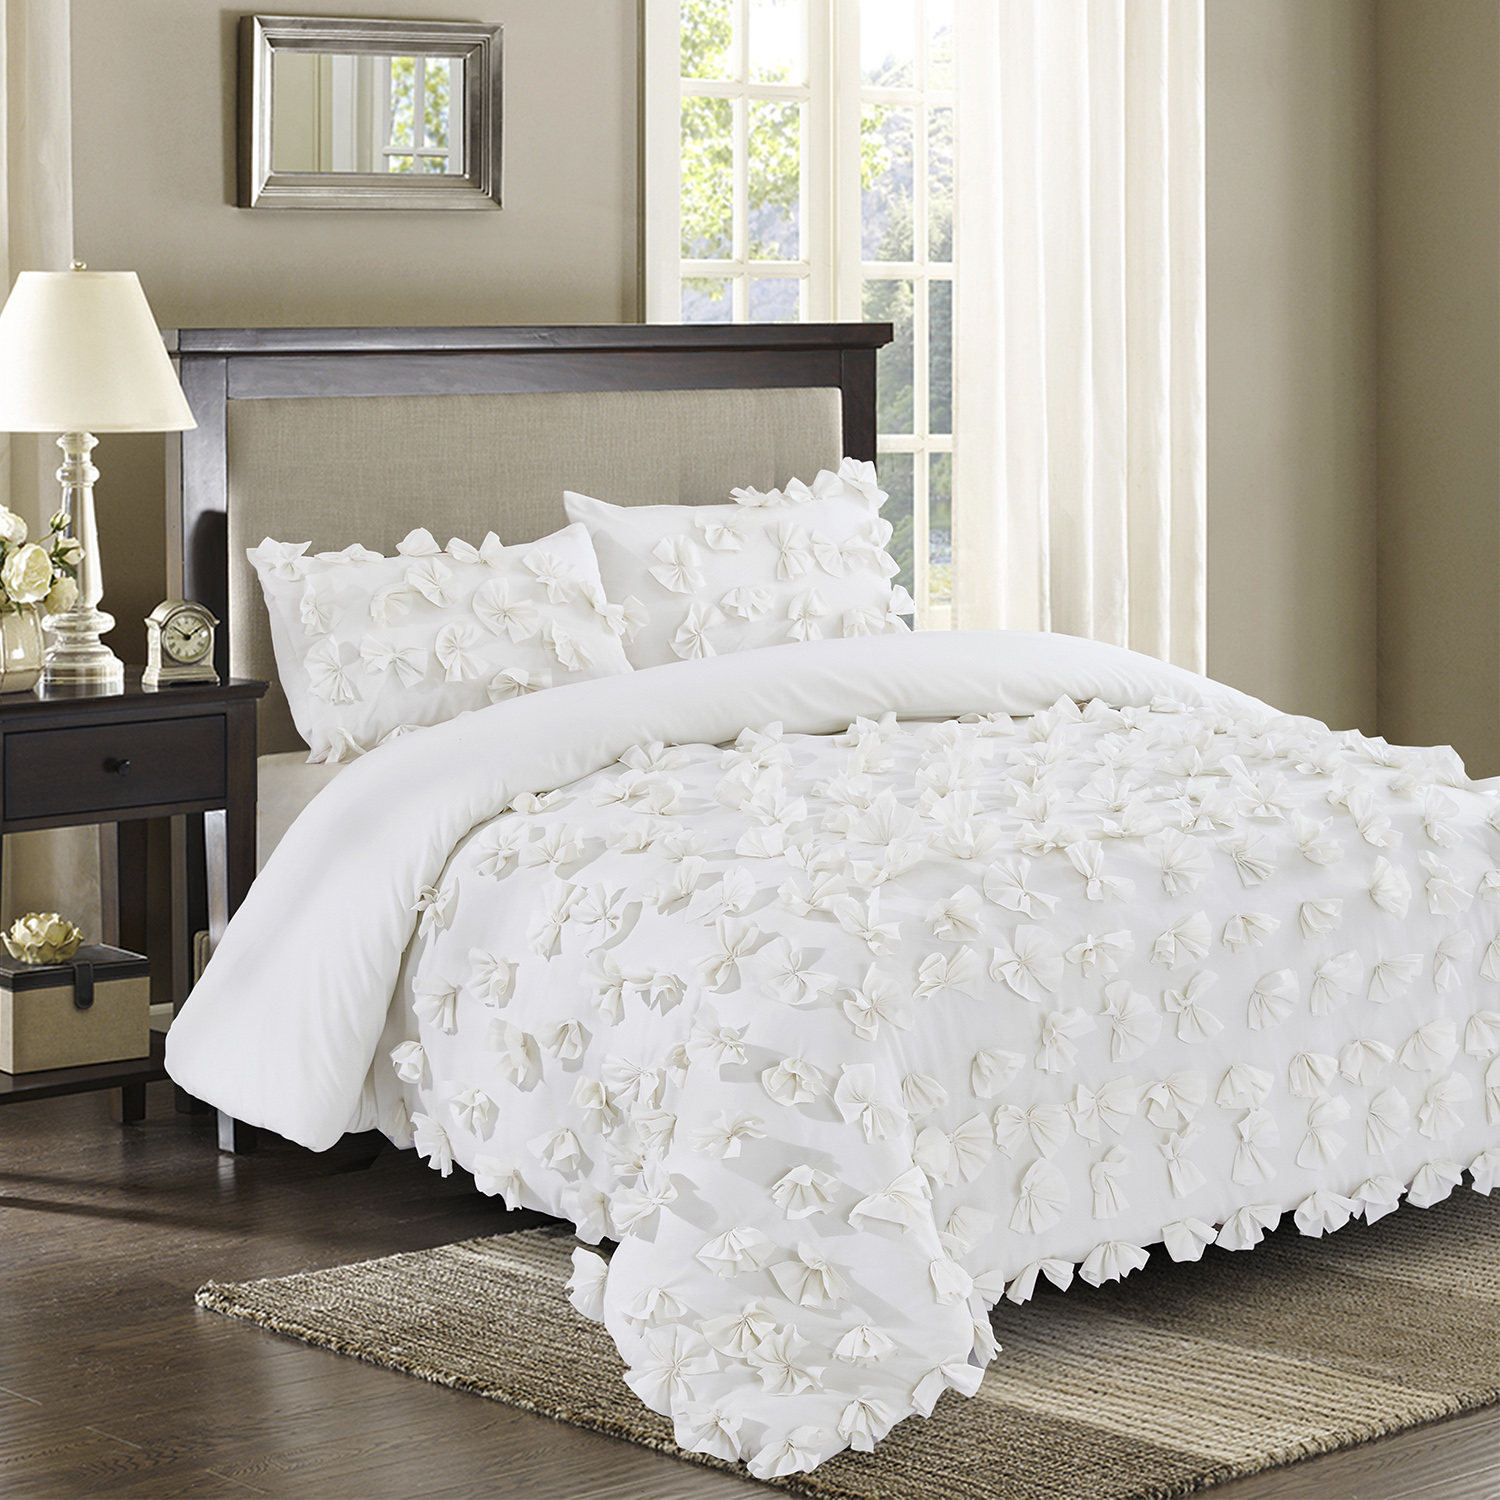 3 Piece Handsewn Bow Ties Romantic King Size Comforter Set Ivory Premium Microfiber Fabric Shabby Chic Style Hypoallergenic Poly Fill Bedding Bed In A Bag Jk Enfield Ivory King Walmart Com Walmart Com